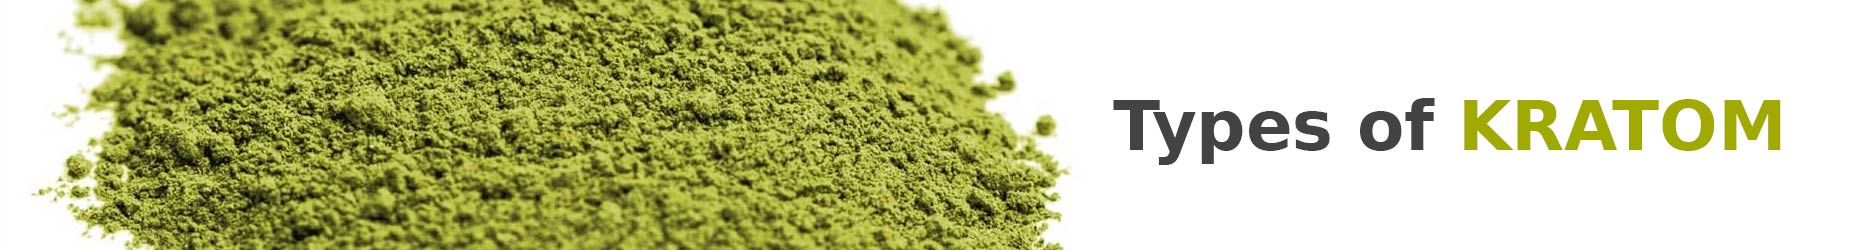 Types-of-Kratom